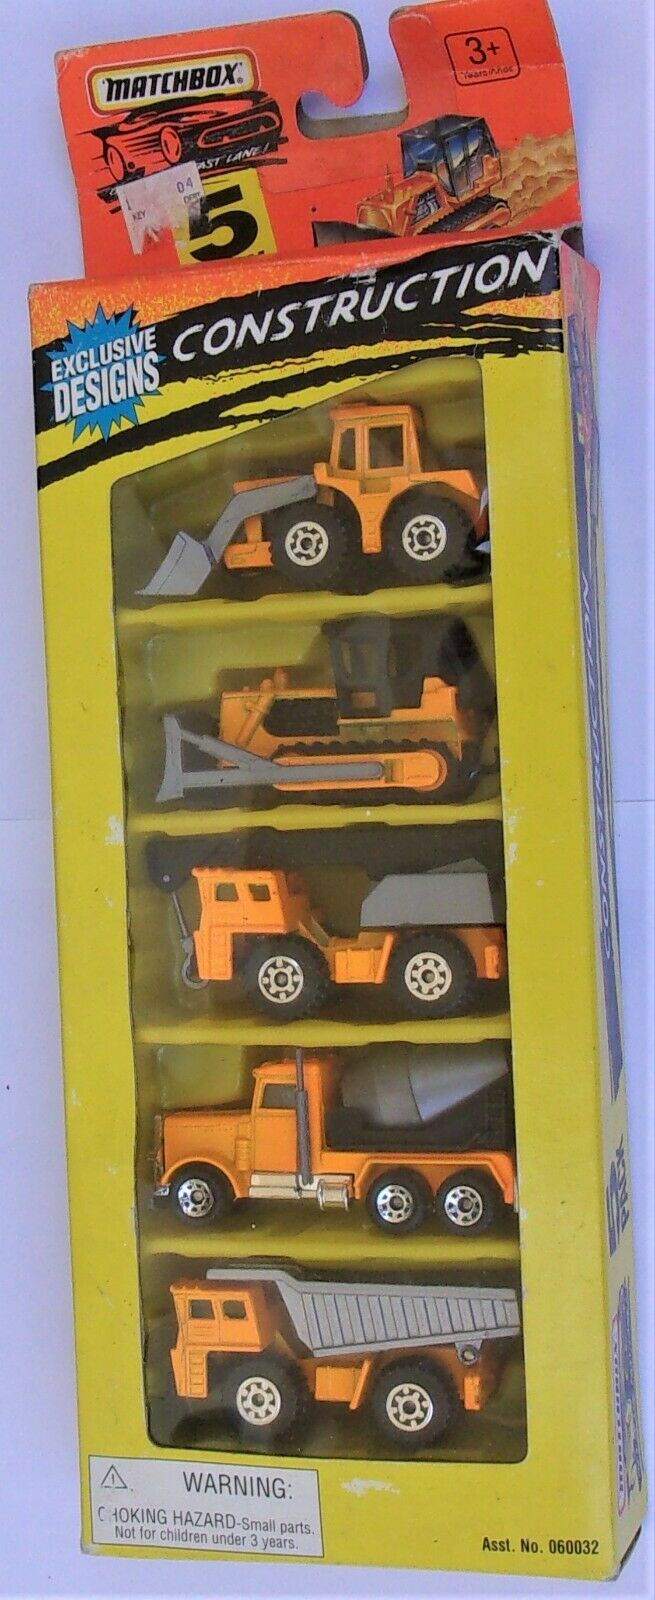 Matchbox  Exclusive Designs  Construction Set   RARE  New in Box  1995